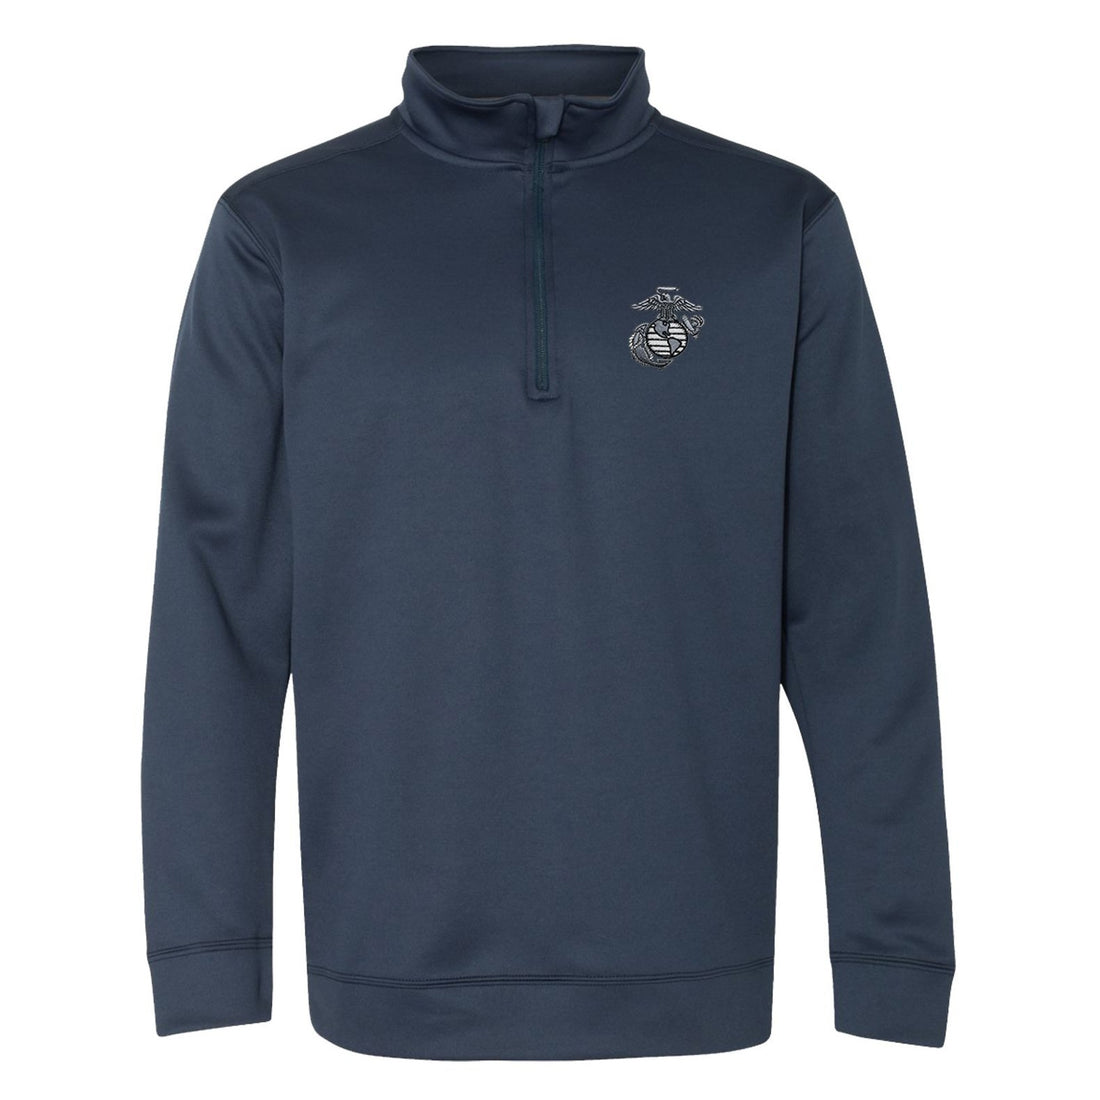 COMBAT CHARGED Aluminum EGA Embroidered Performance® Tech Quarter-Zip Pullover Sweatshirt